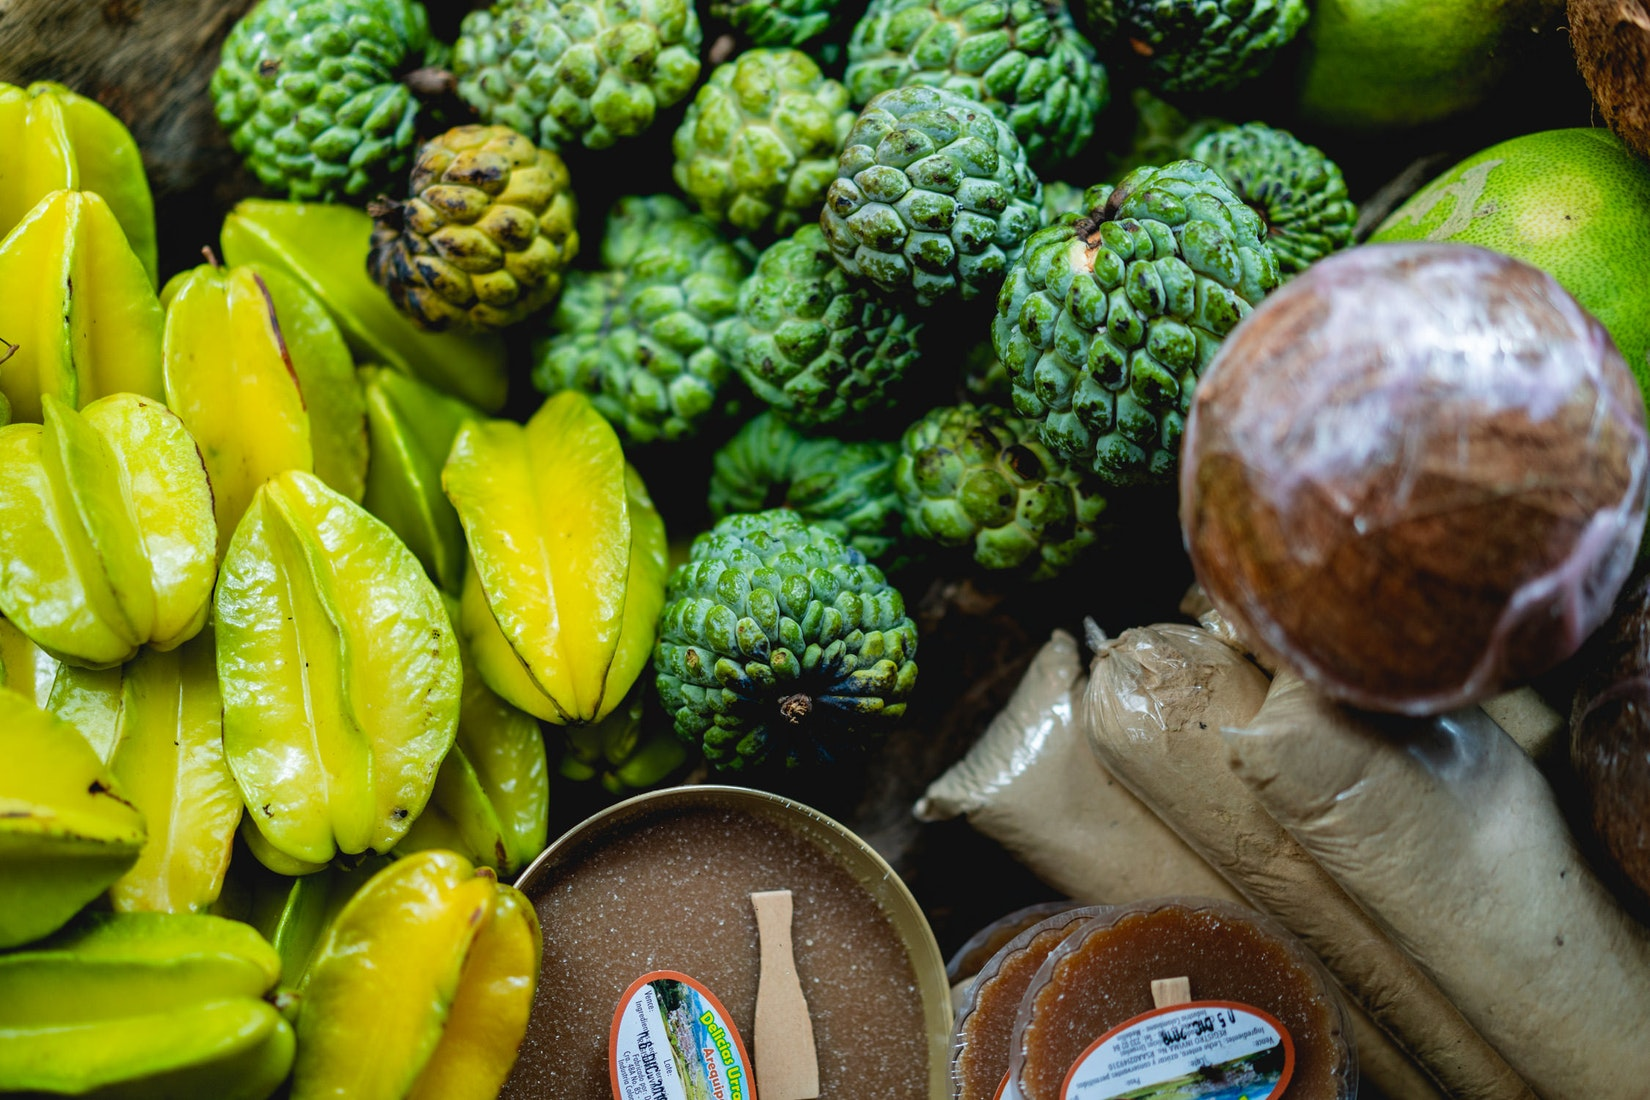 Starfruit and guanabana for sale in a Colombian market